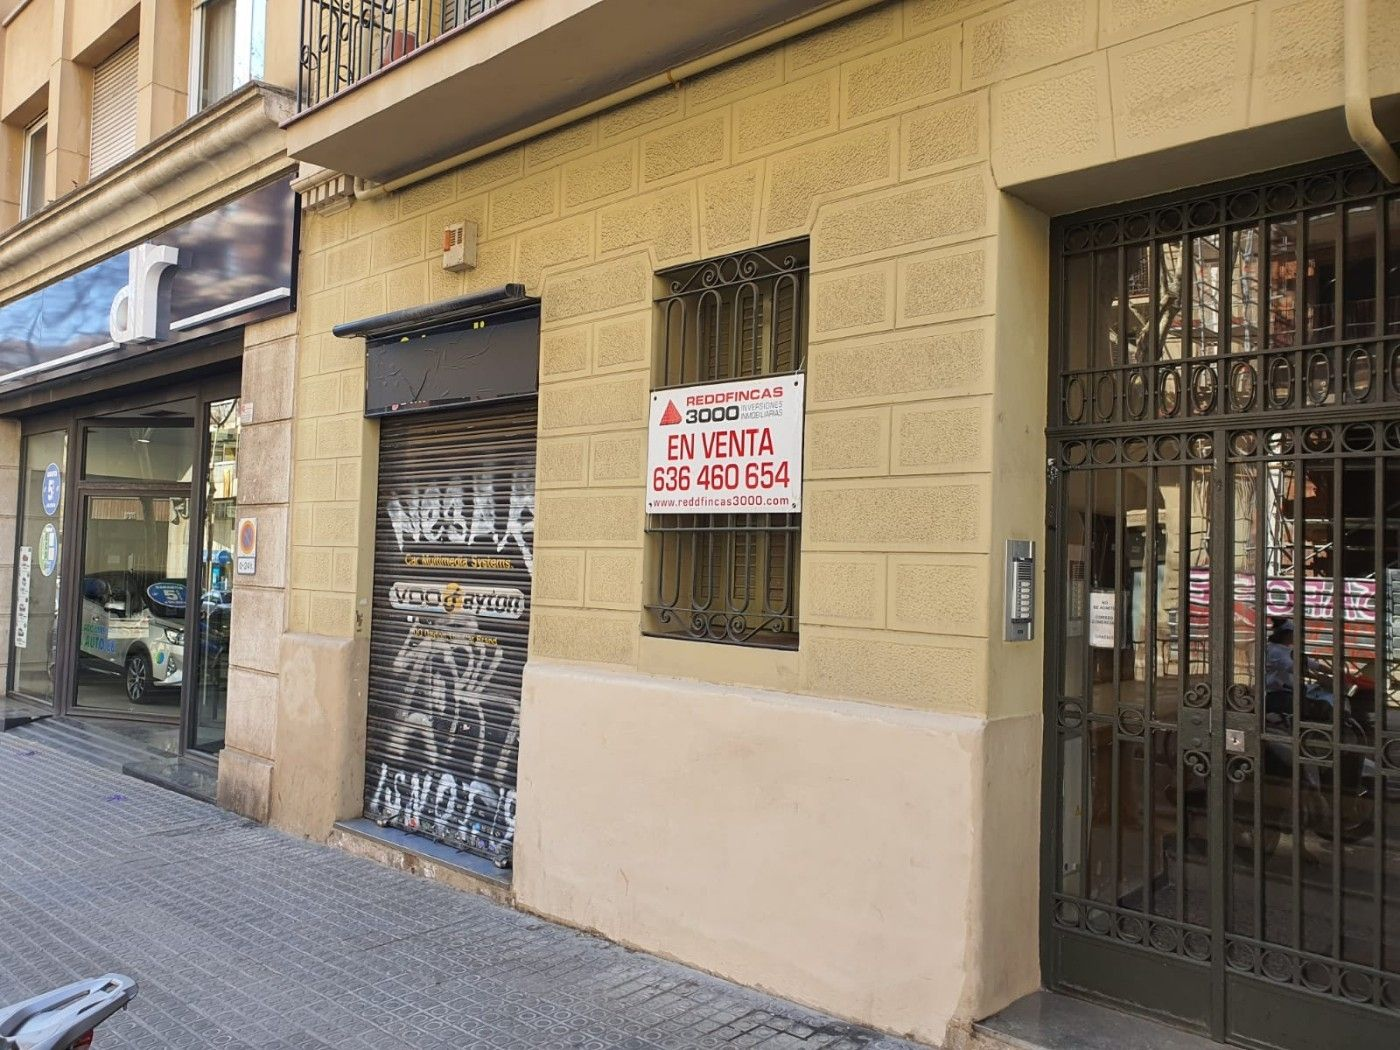 Geschäftsraum in Carrer cartagena, 207. Local en venta en encants nous